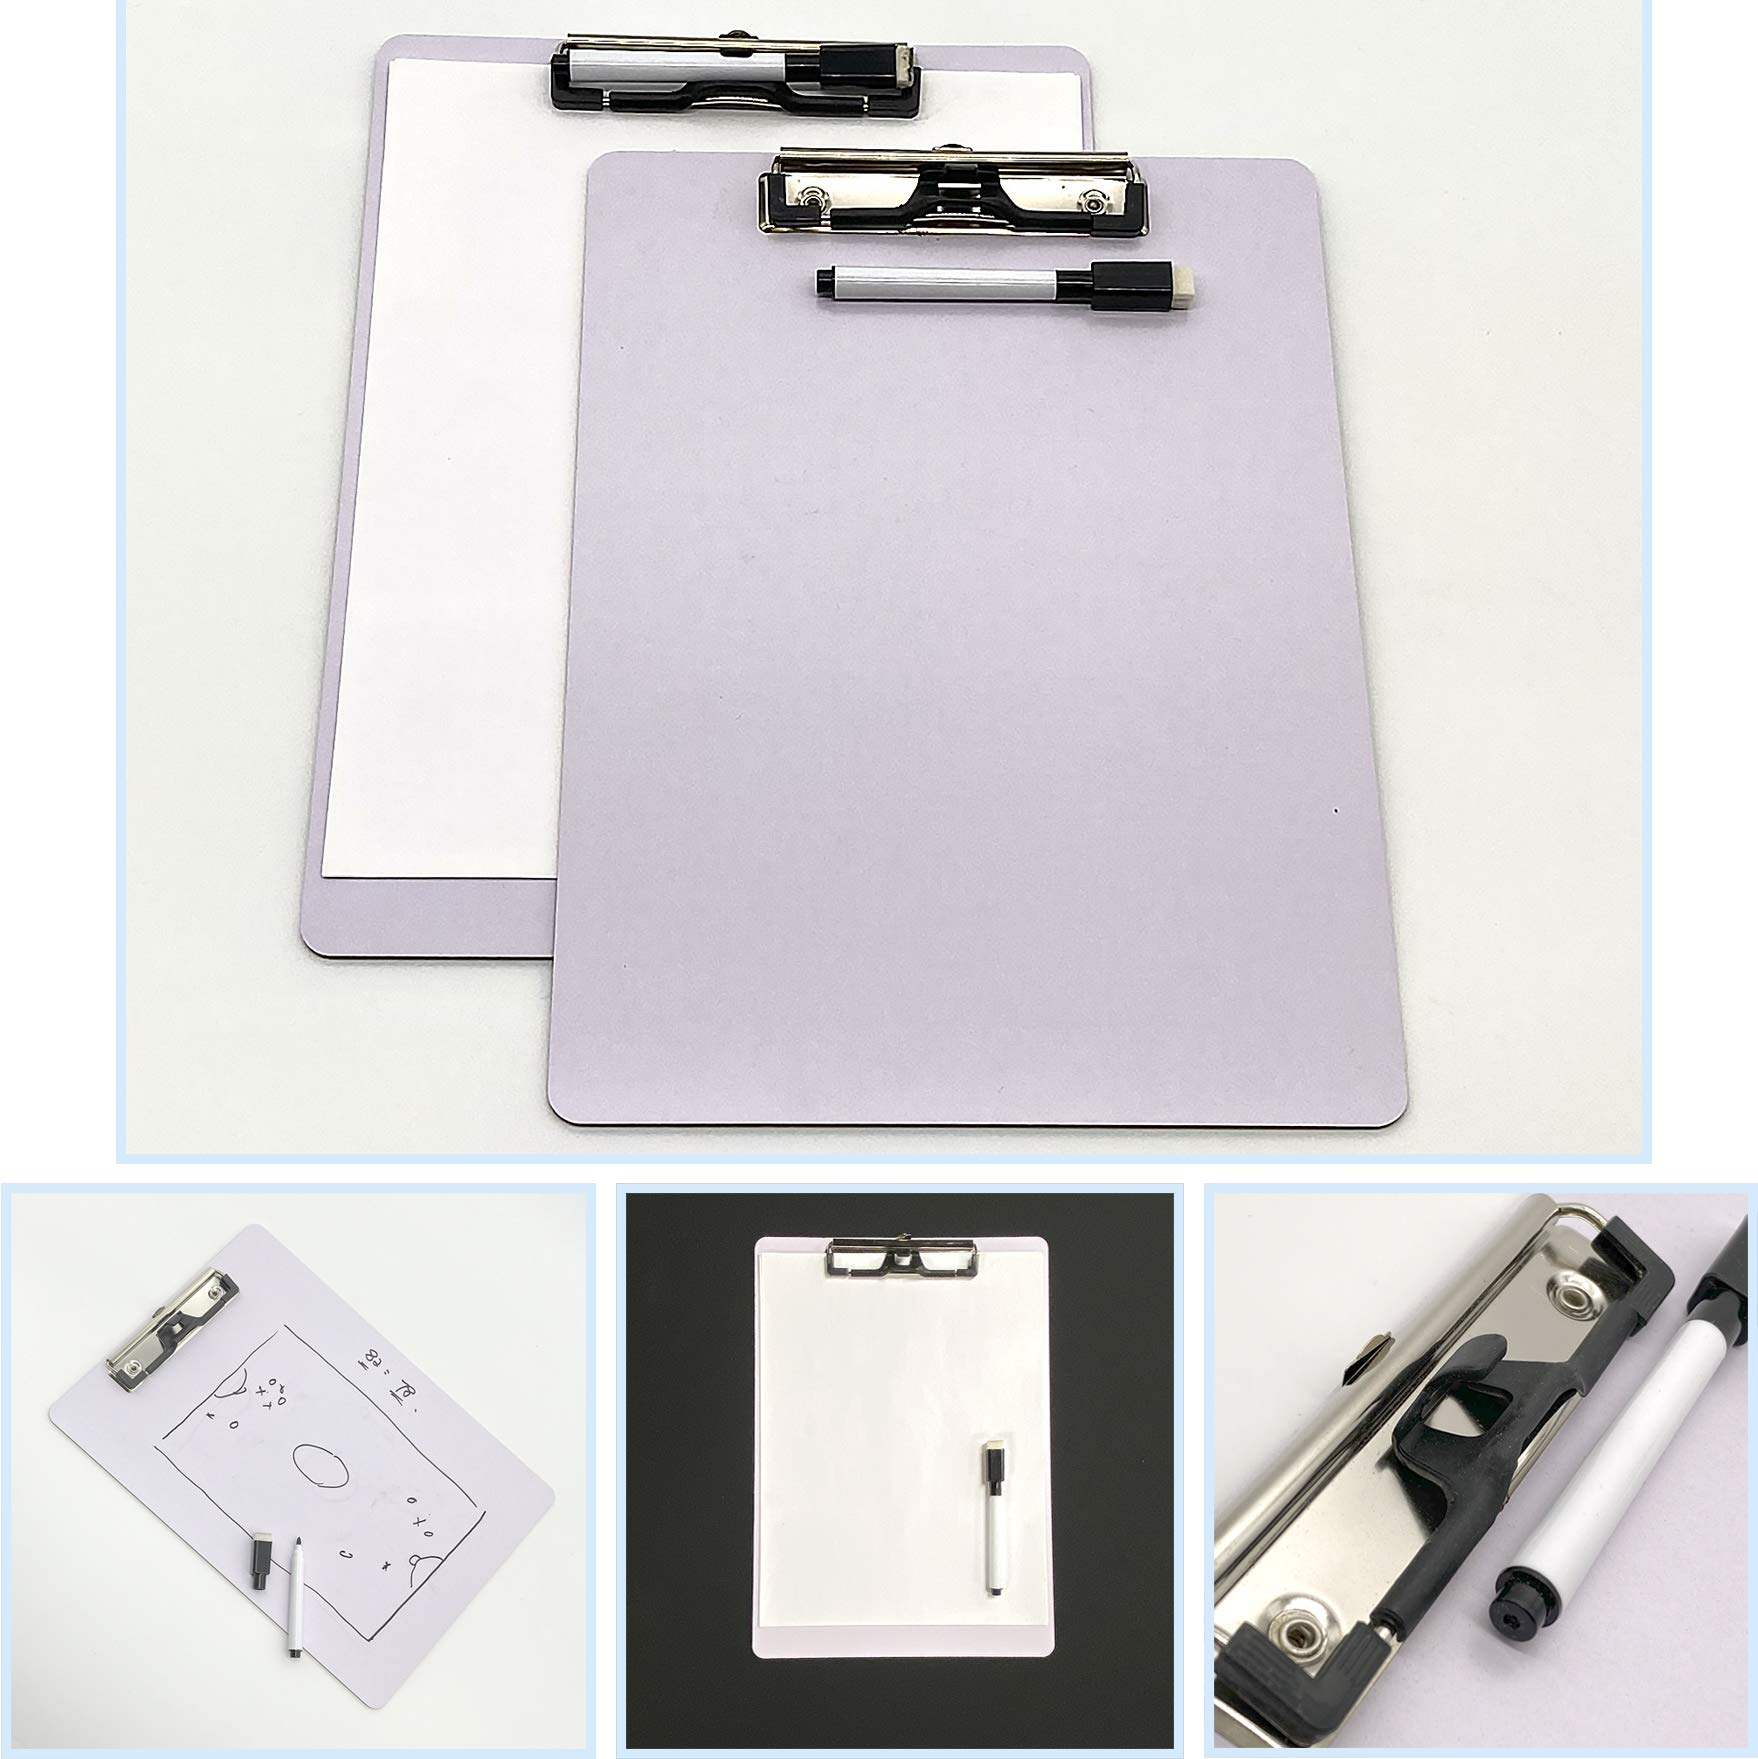 JCHB 2 sets Letter Size Dry Erase White Board Clipboard with Pen Clip, Marker & Eraser great for teachers meeting note, students writing practice, kids drawing game, classroom double sided whiteboard